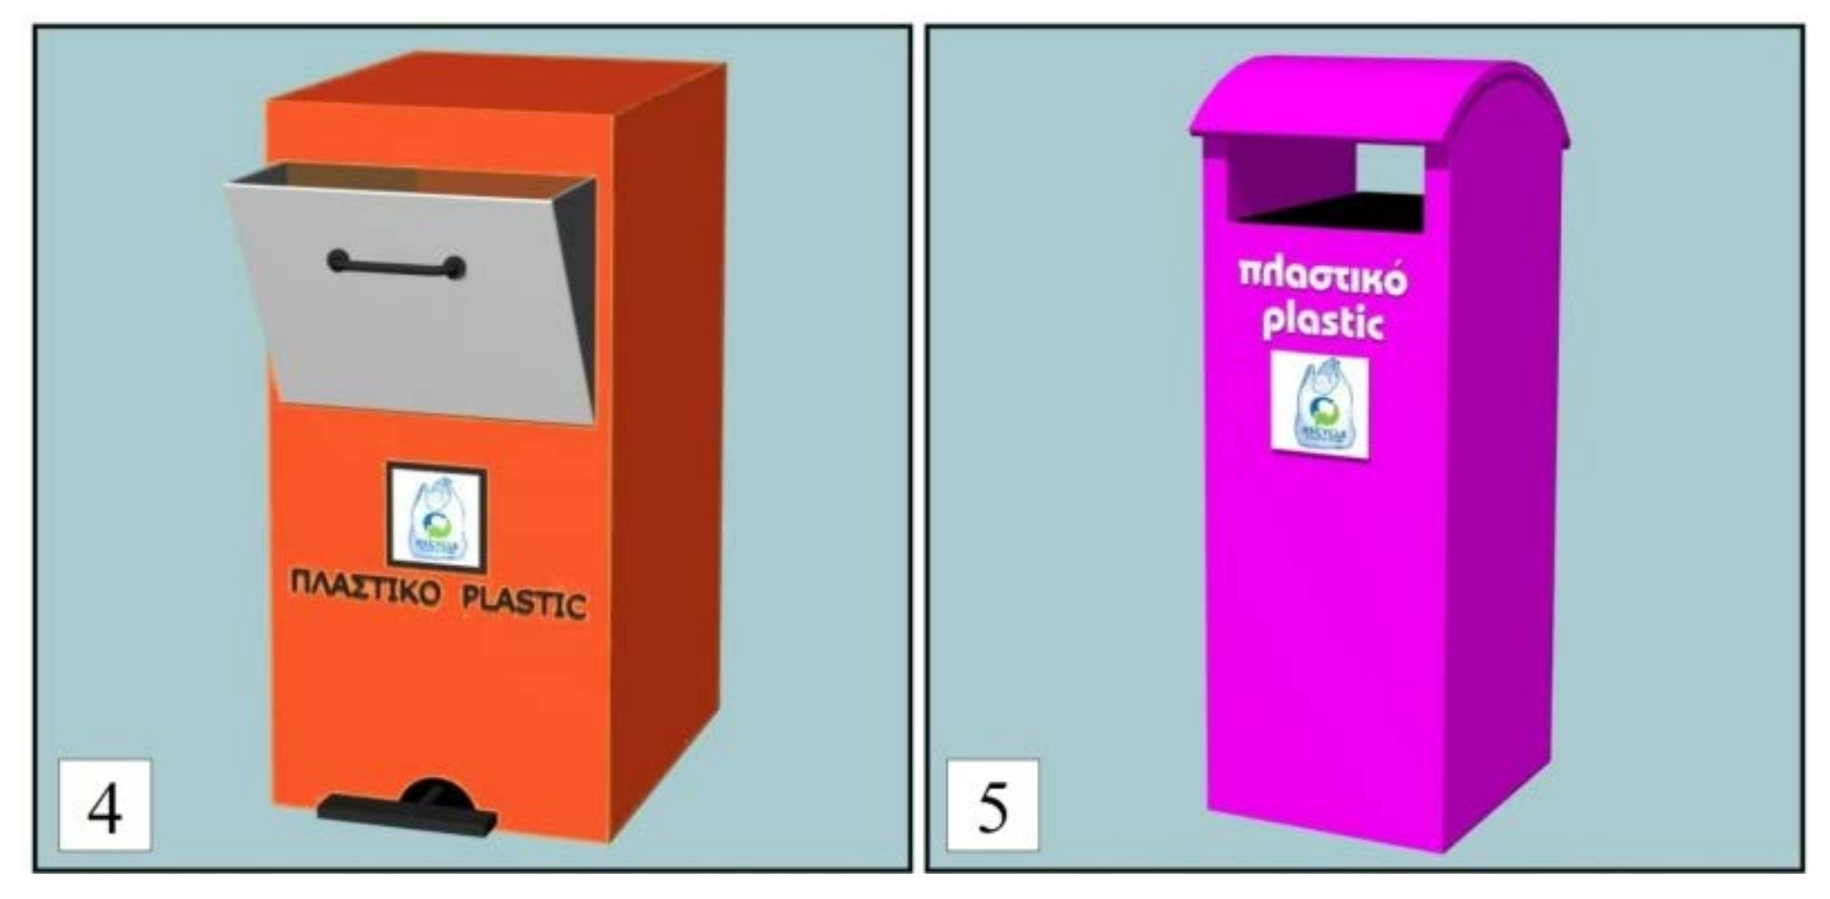 Sustainability Free Full Text Public Participation In Designing The Recycling Bins To Encourage Recycling